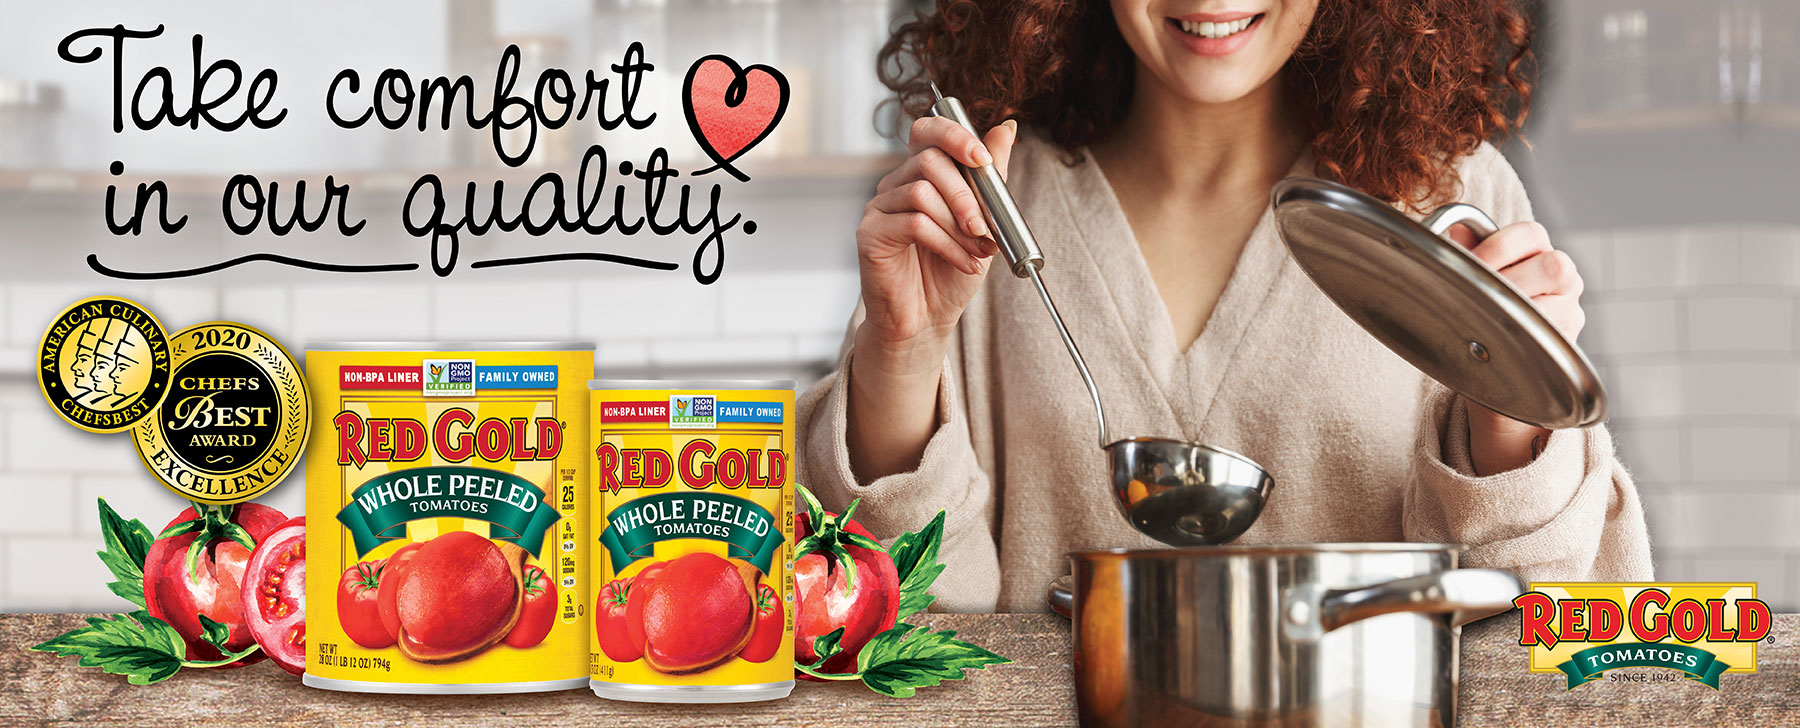 Image of Red Gold quality tomatoes with woman behind soup pot and holding a ladle